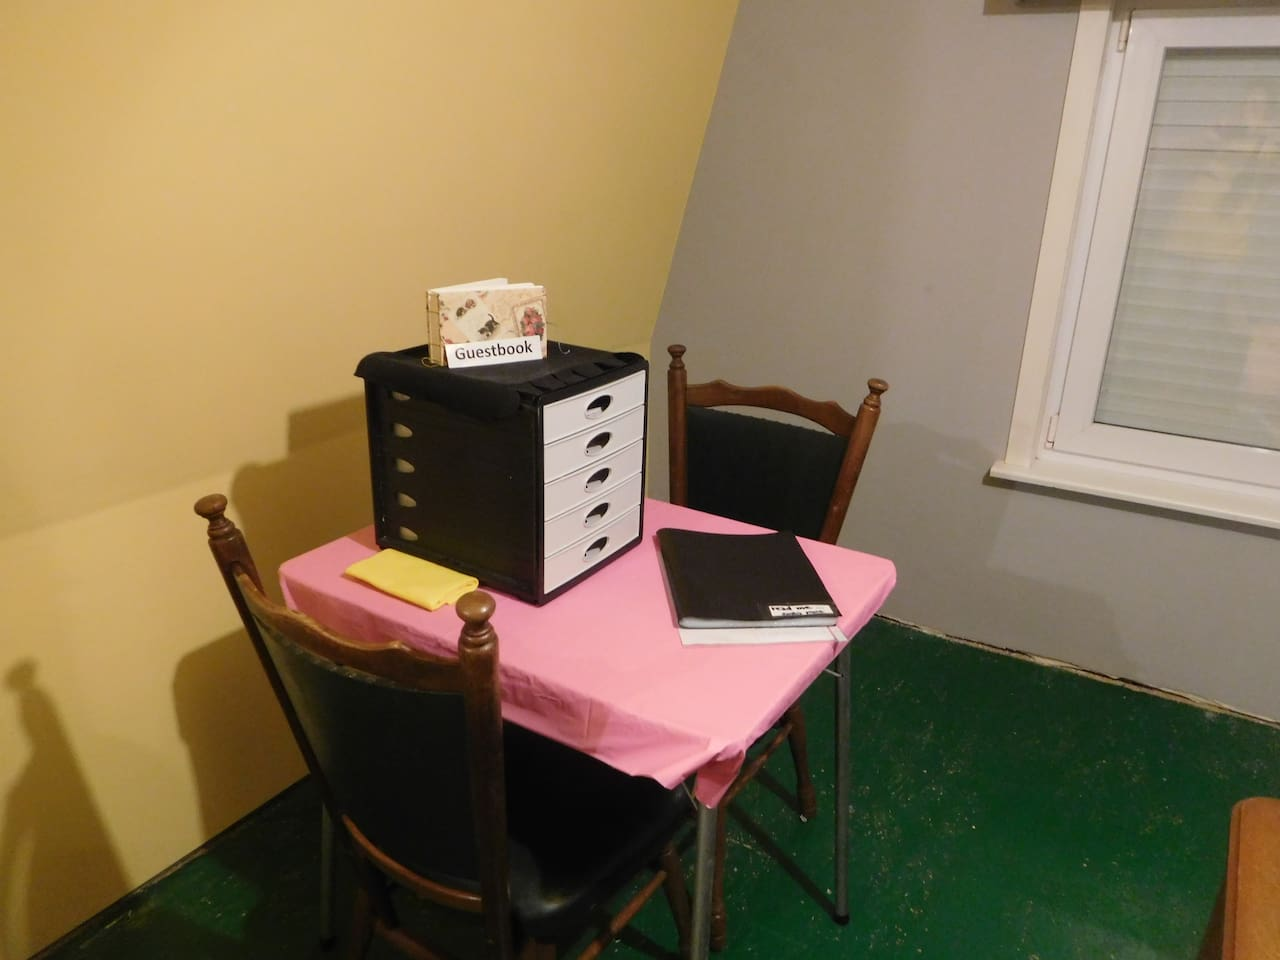 Information about my house and guestbook available in the guestroom upstairs